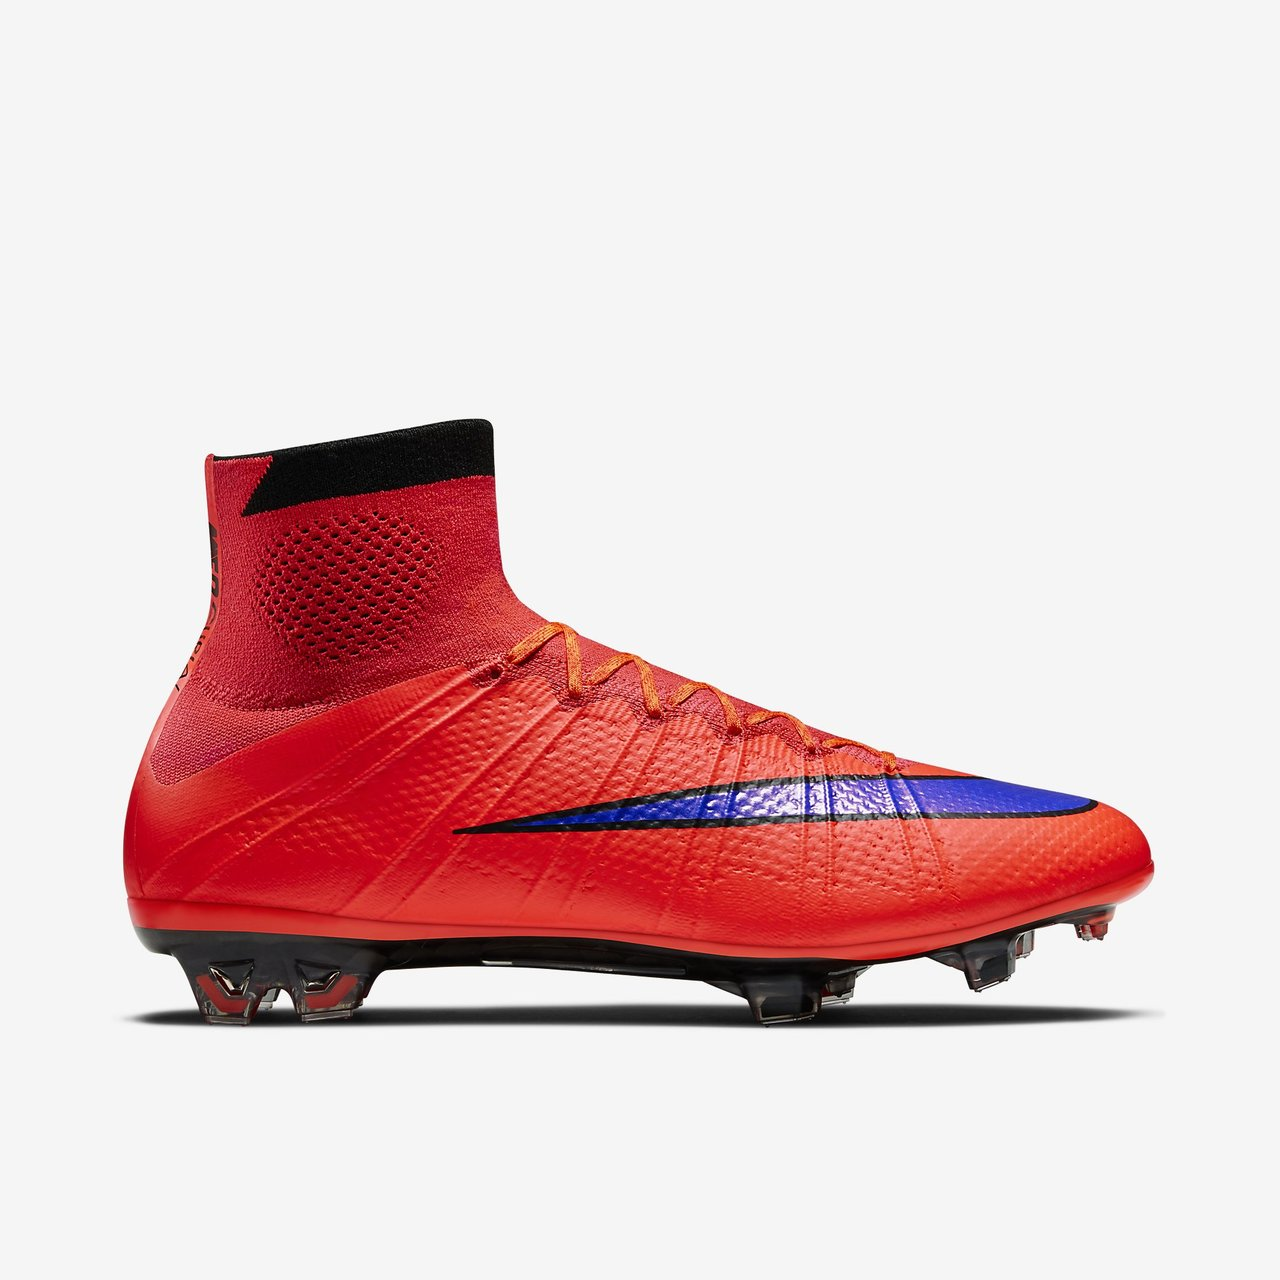 nike mercurial superfly fg boots intense heat pack. Black Bedroom Furniture Sets. Home Design Ideas